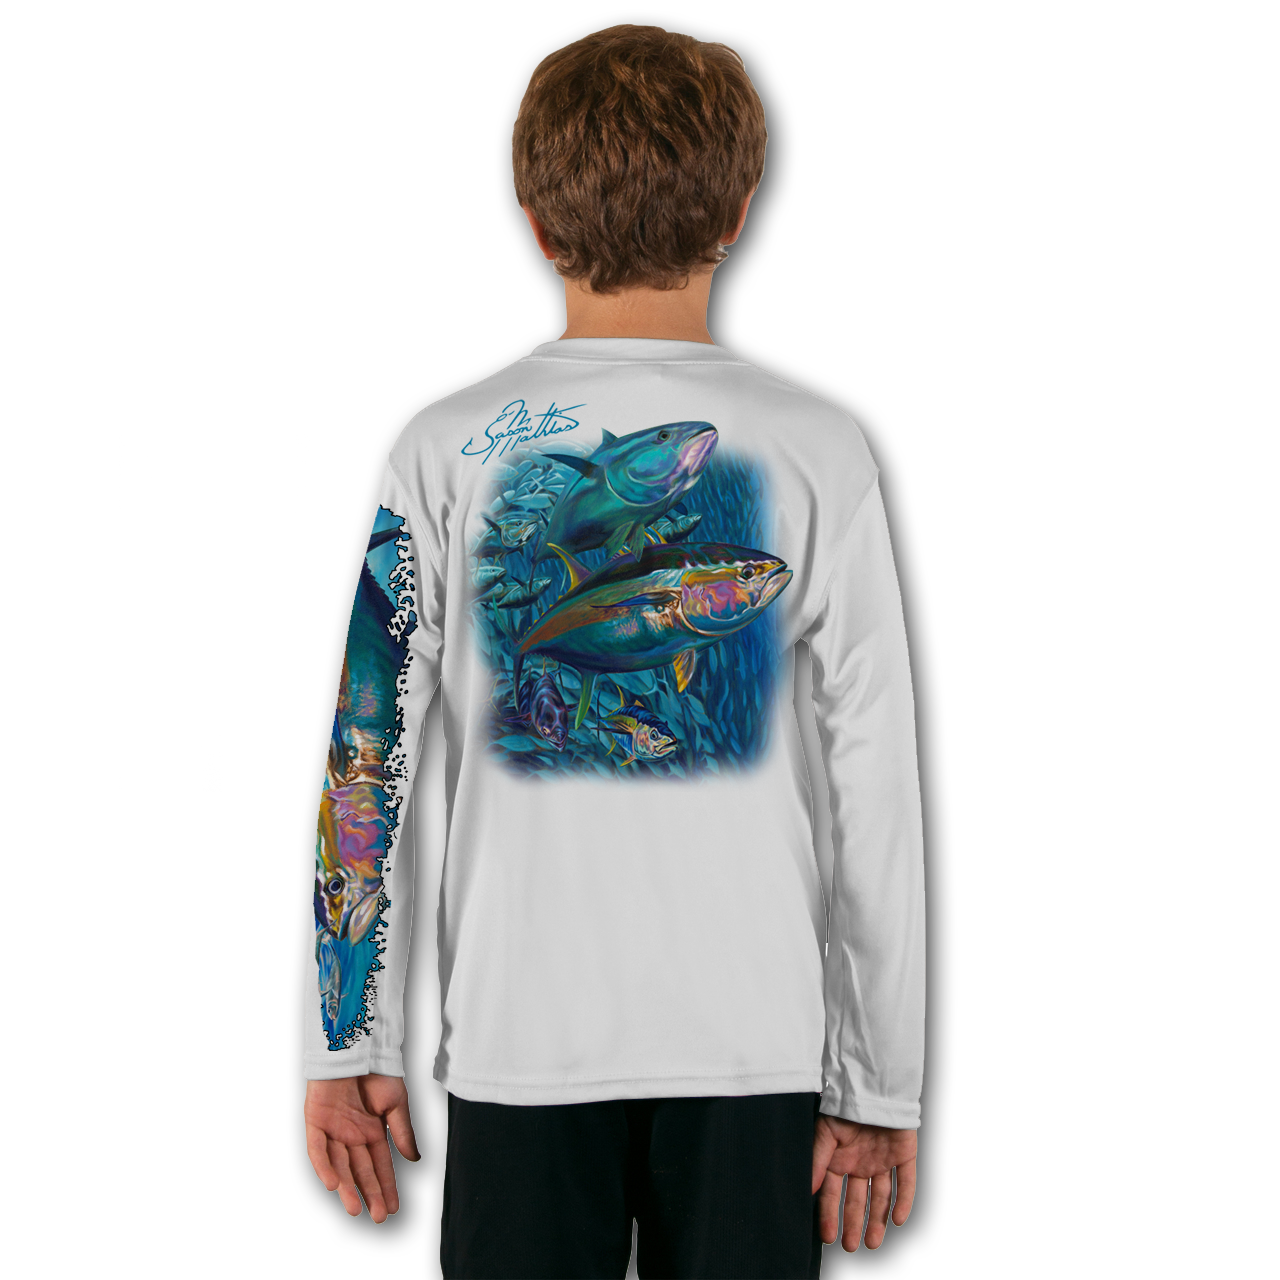 tuna-white-youth-solar-ls-back-performance-shirt.png